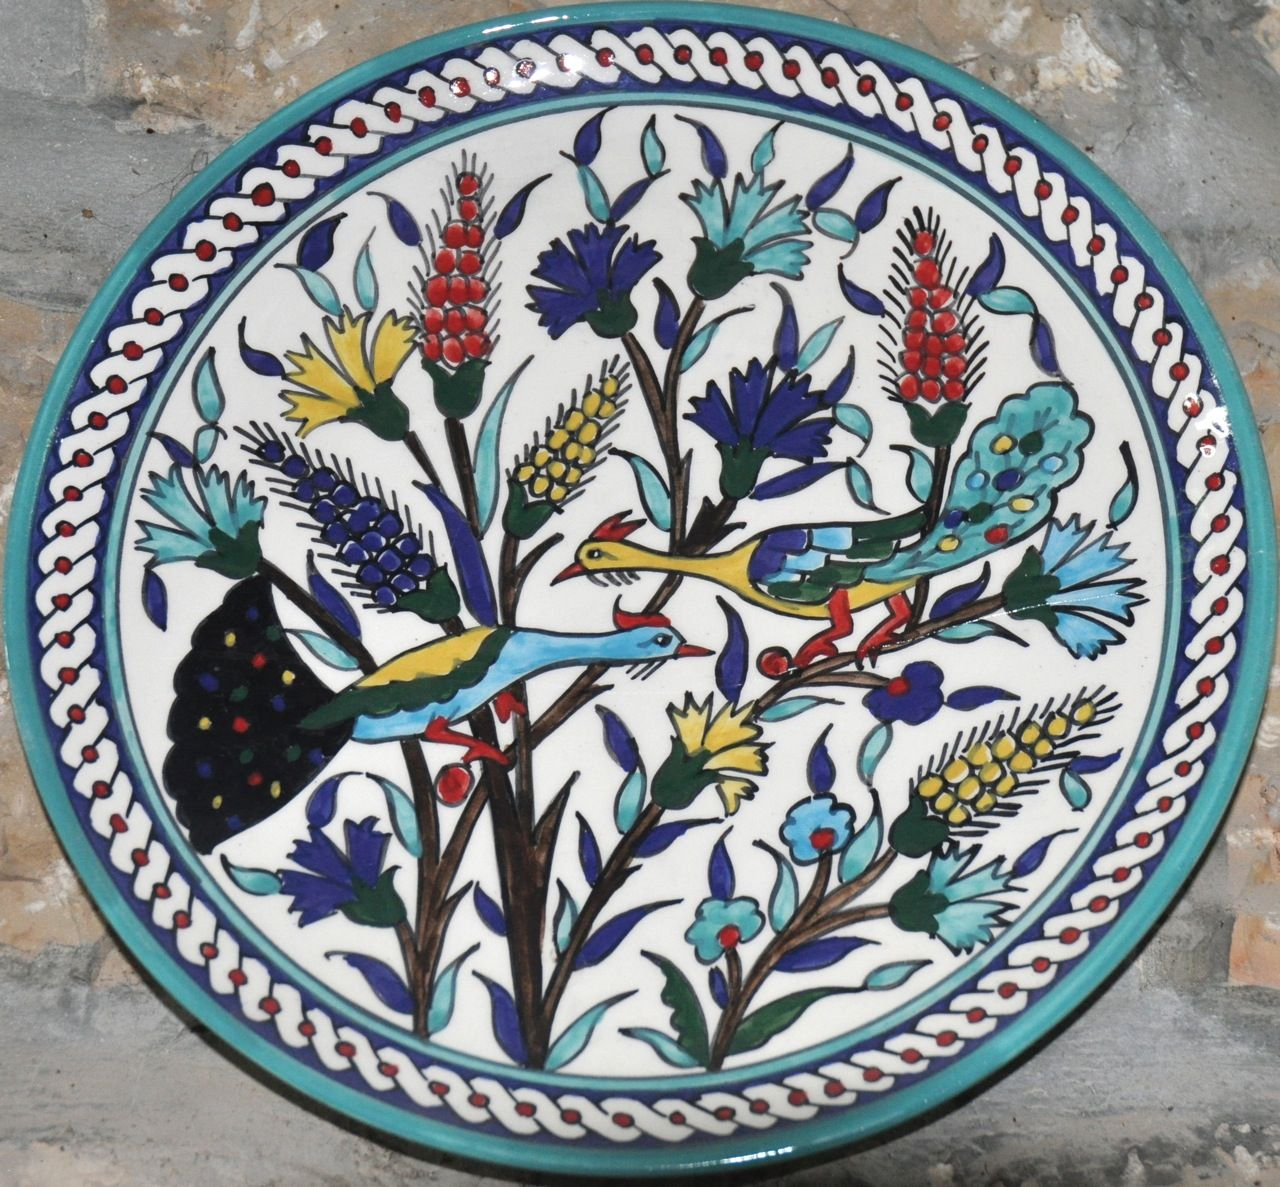 Armenian ceramics google armenean ceramics pinterest armenian ceramics google dailygadgetfo Images